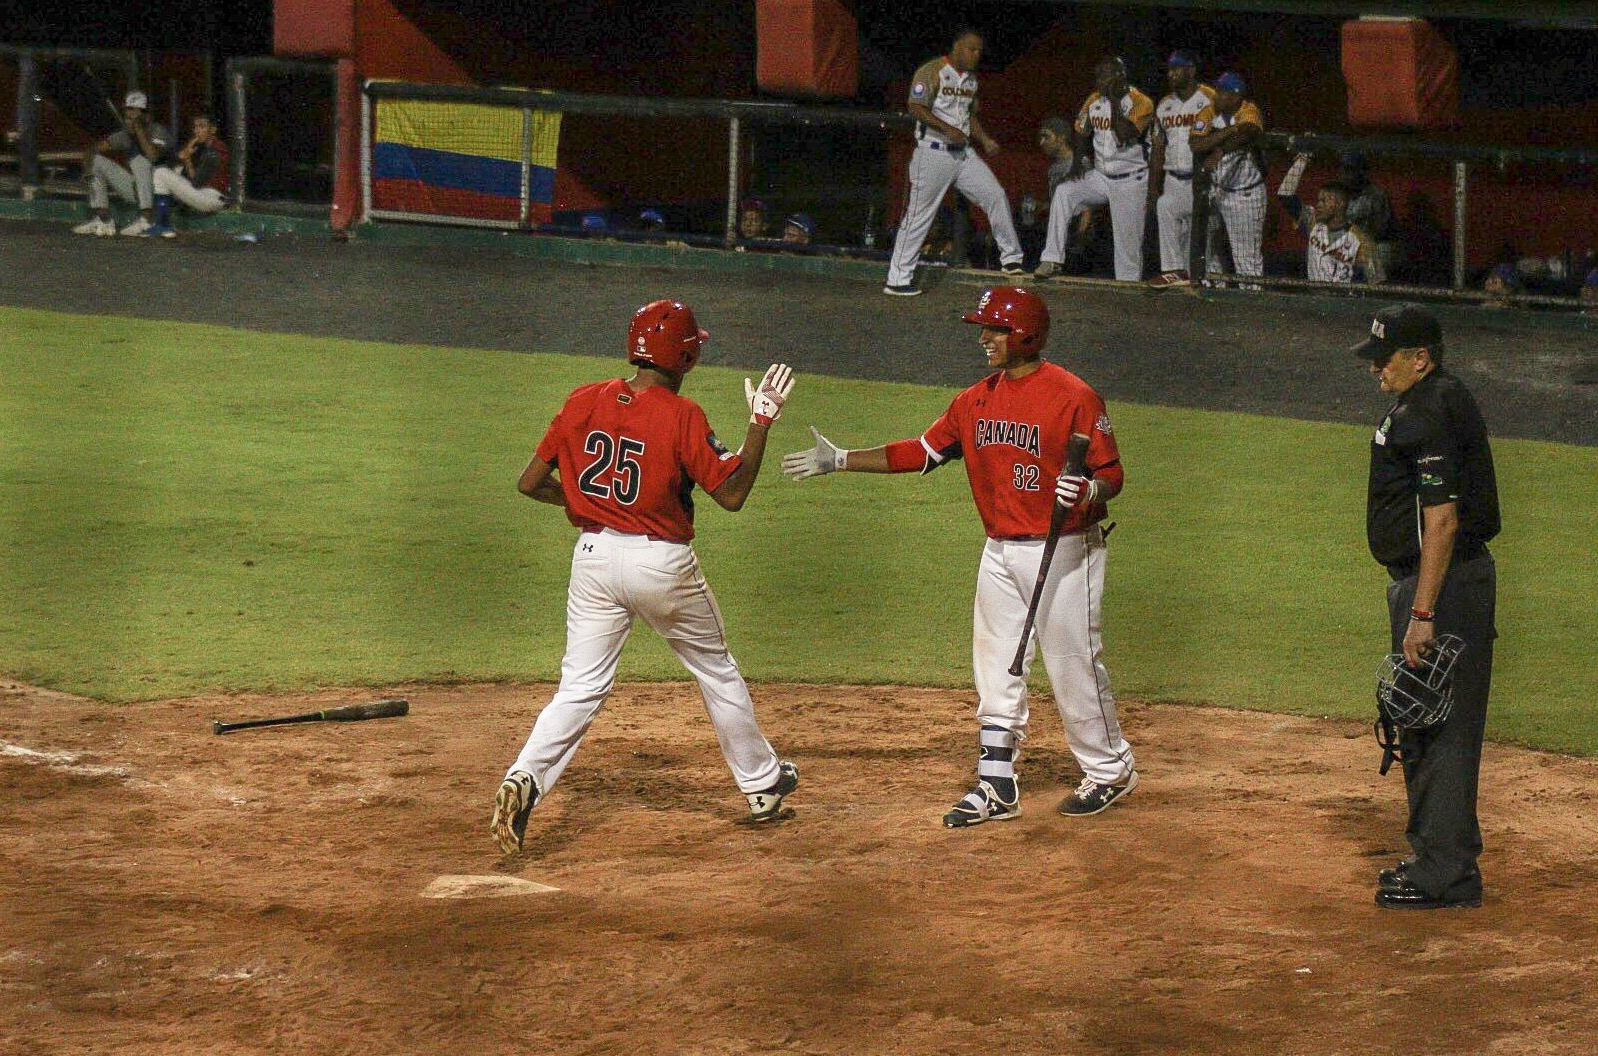 U18 World Qualifier: Valero's homer leads Canada over Colombia